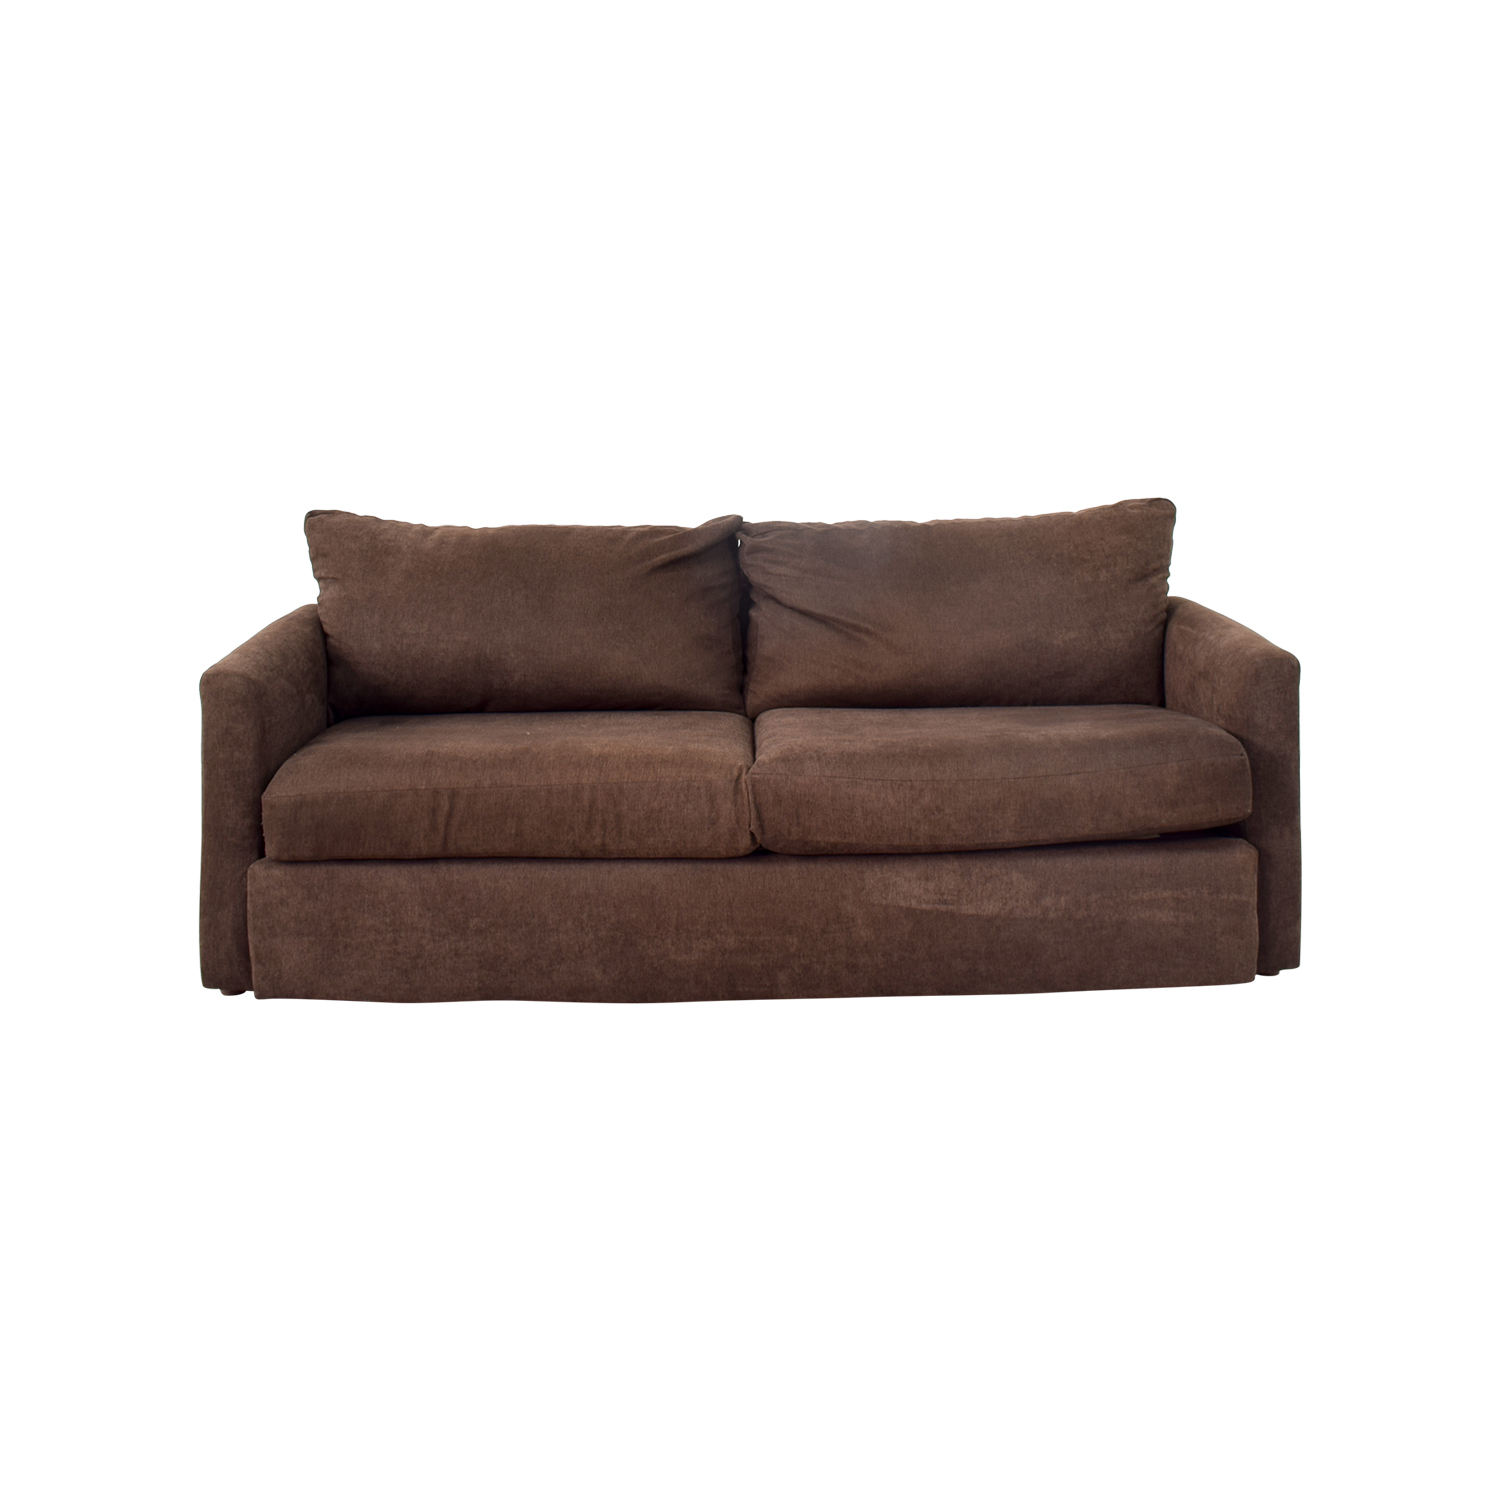 Bobs Furniture Bobs Furniture Brown Loveseat price